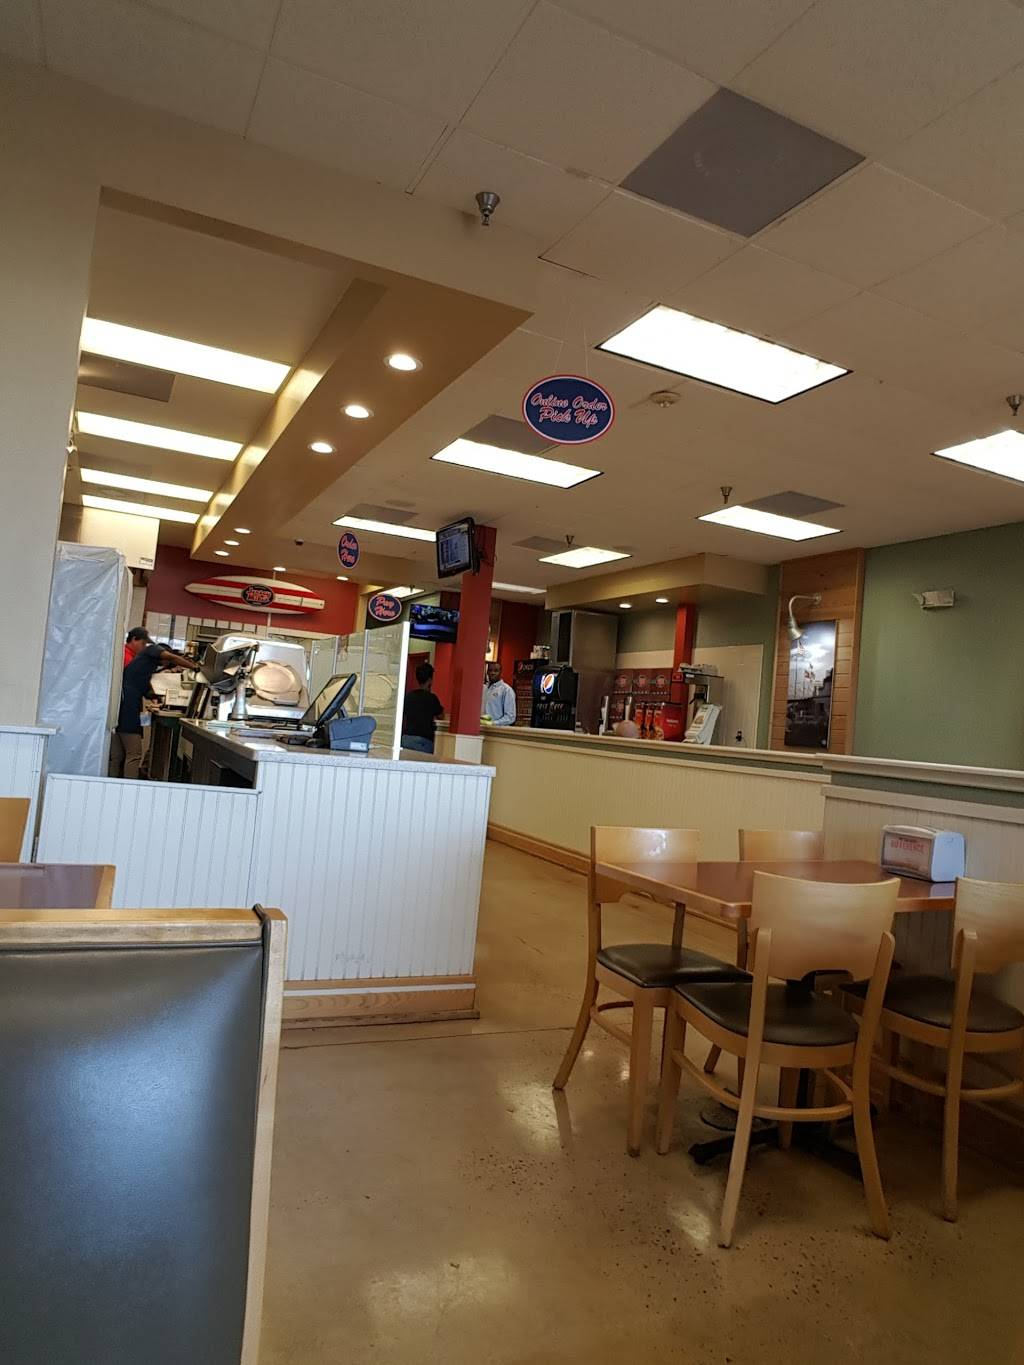 Jersey Mikes Subs | meal takeaway | 9211-12 North Tryon St., Mallard Pointe Shopping Center (University Unc Charlotte Area), Charlotte, NC 28262, USA | 7045499003 OR +1 704-549-9003